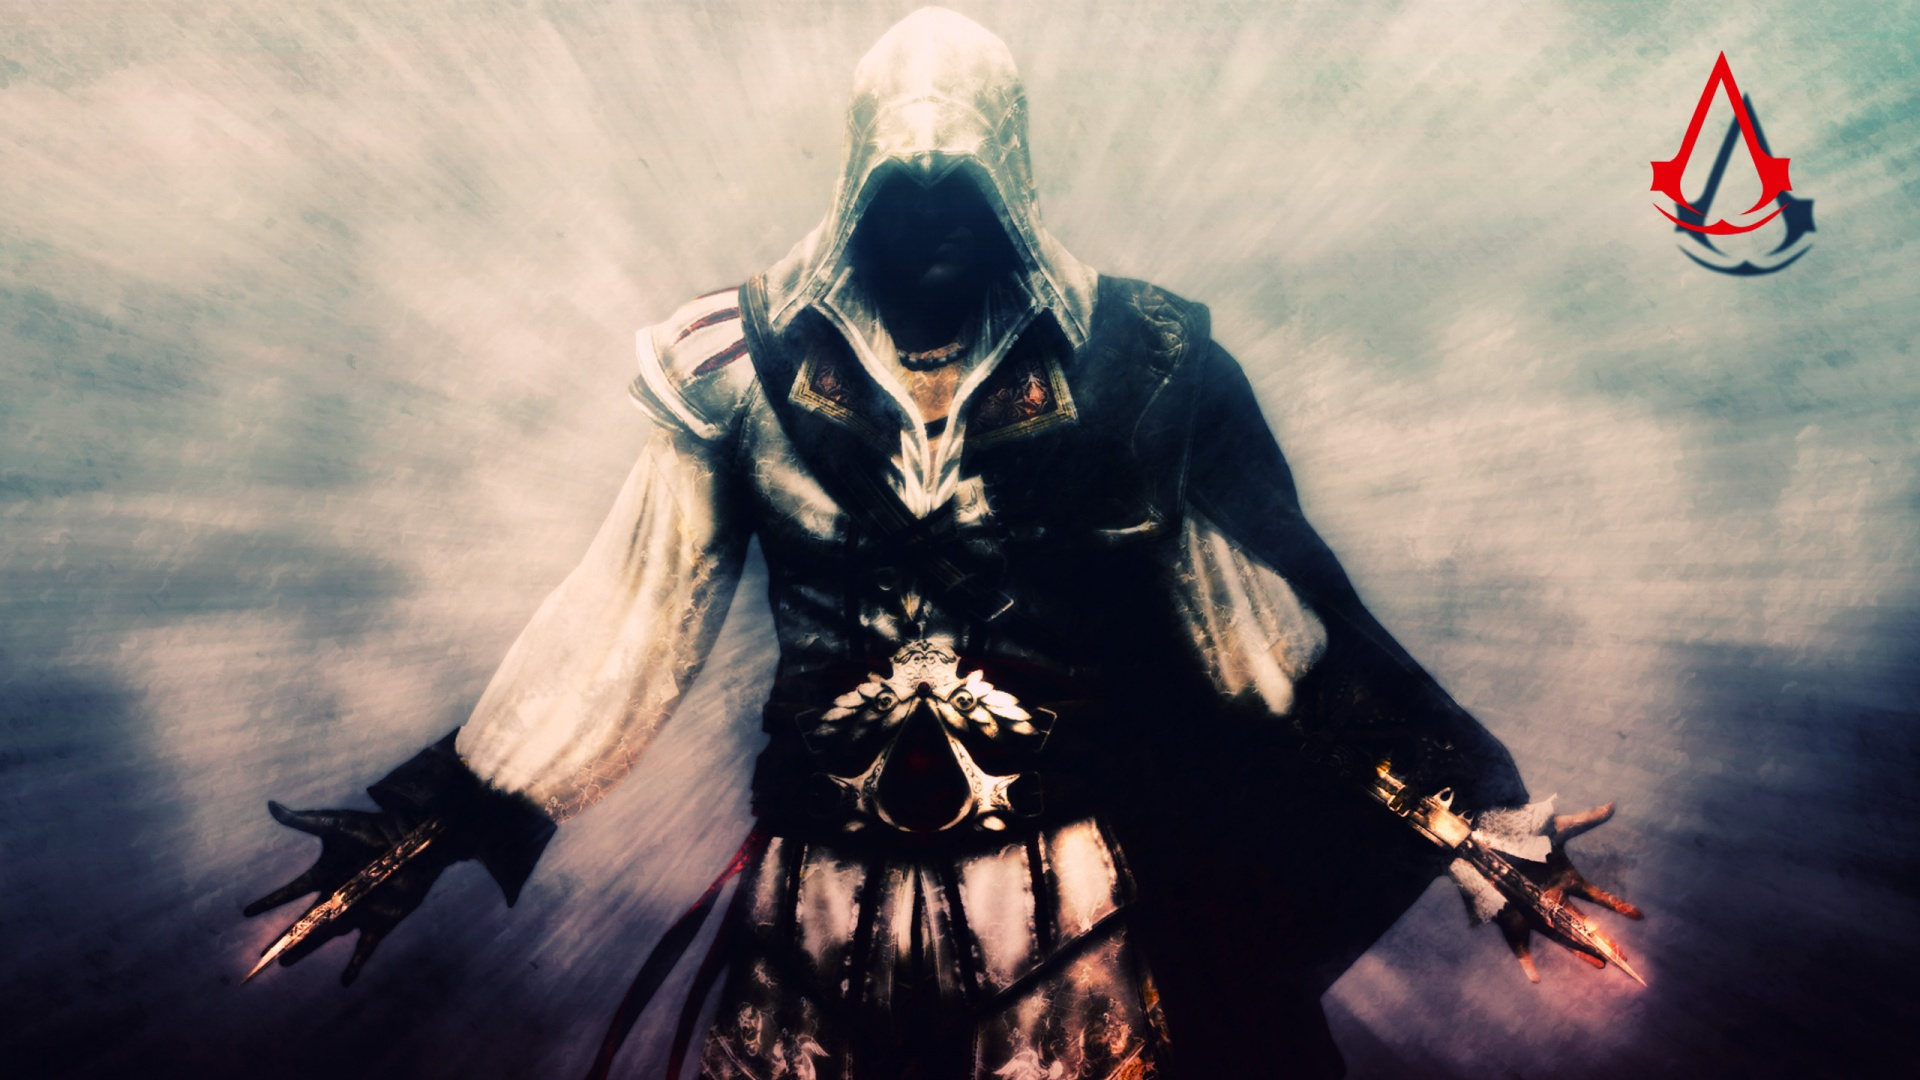 The Assassins Images Ezio HD Wallpaper And Background Photos